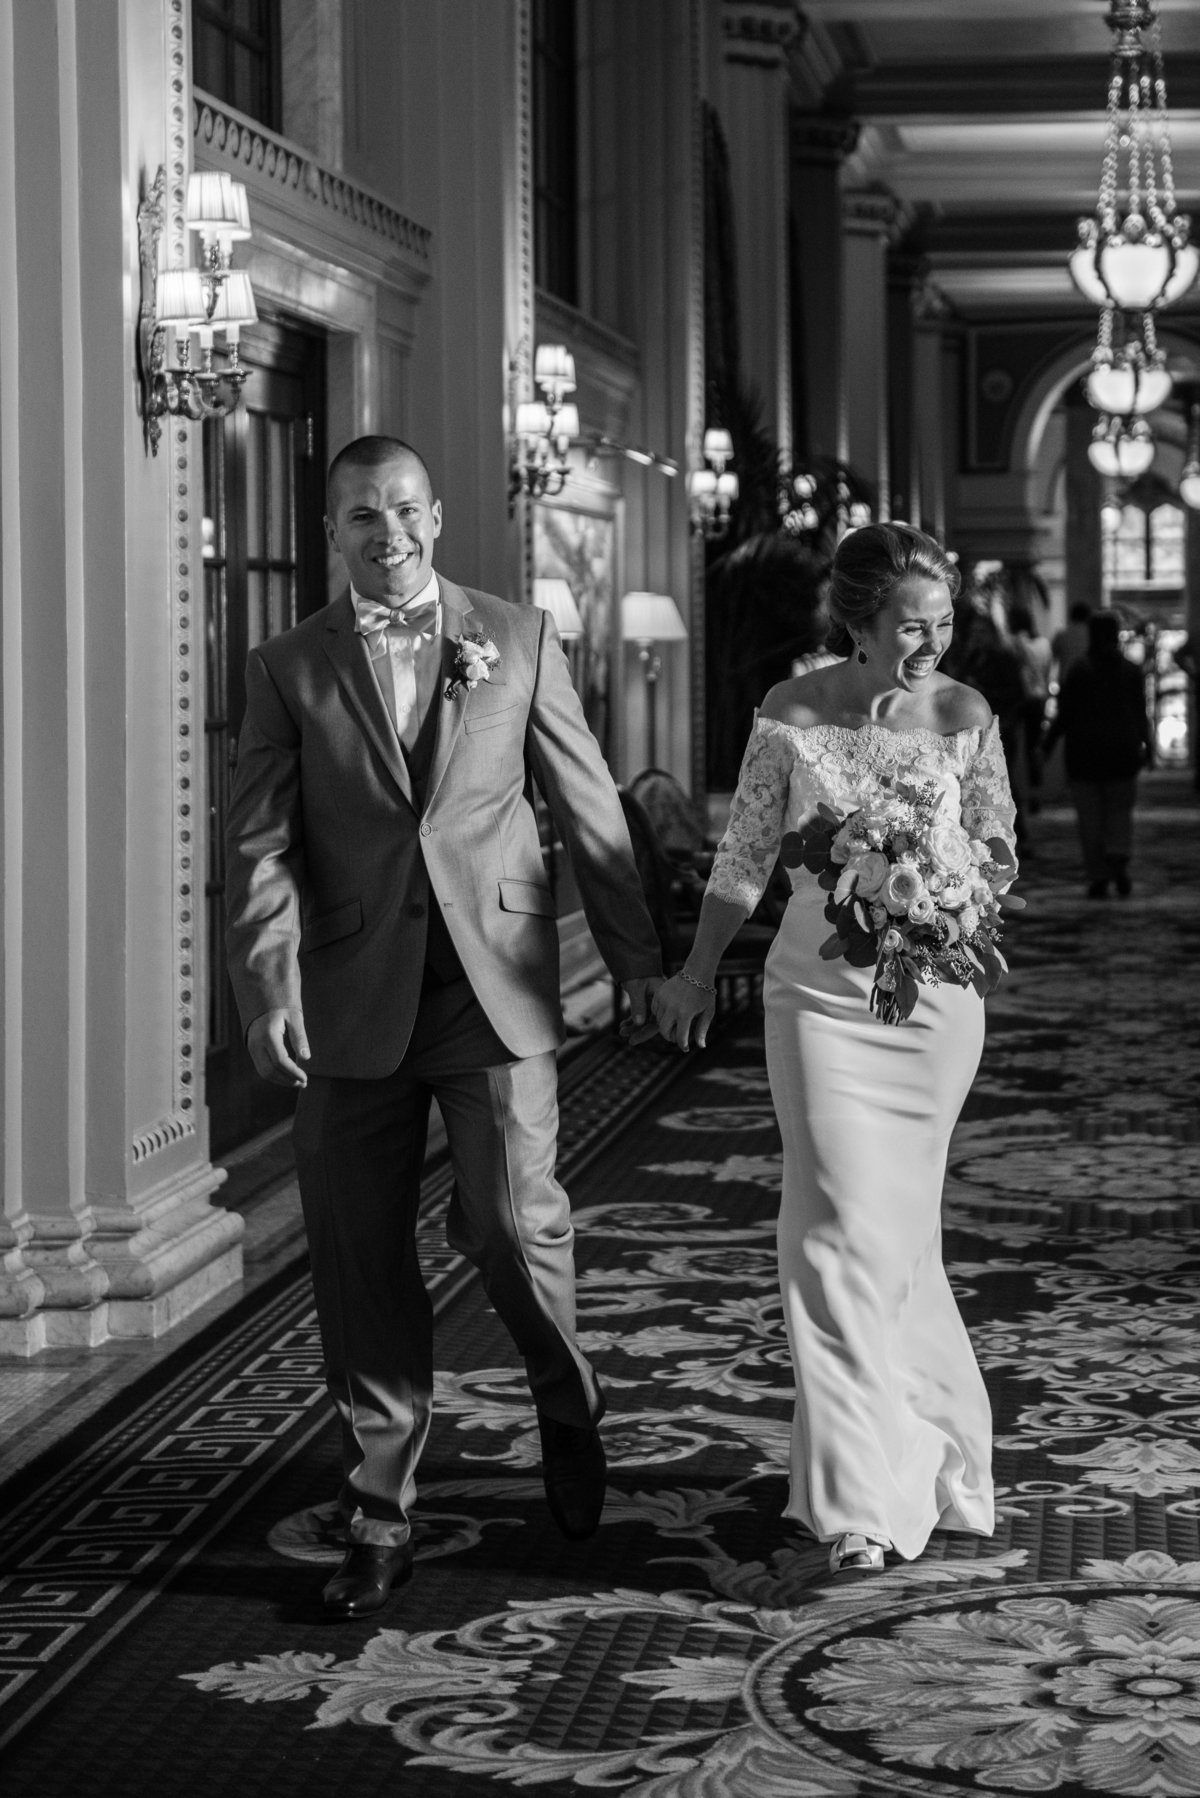 Black anBlack and White of Bride and Groom in Peacock Alley at the Williardd White Wedding Photography of Bride and Groom at the Willard, Peacock Alley